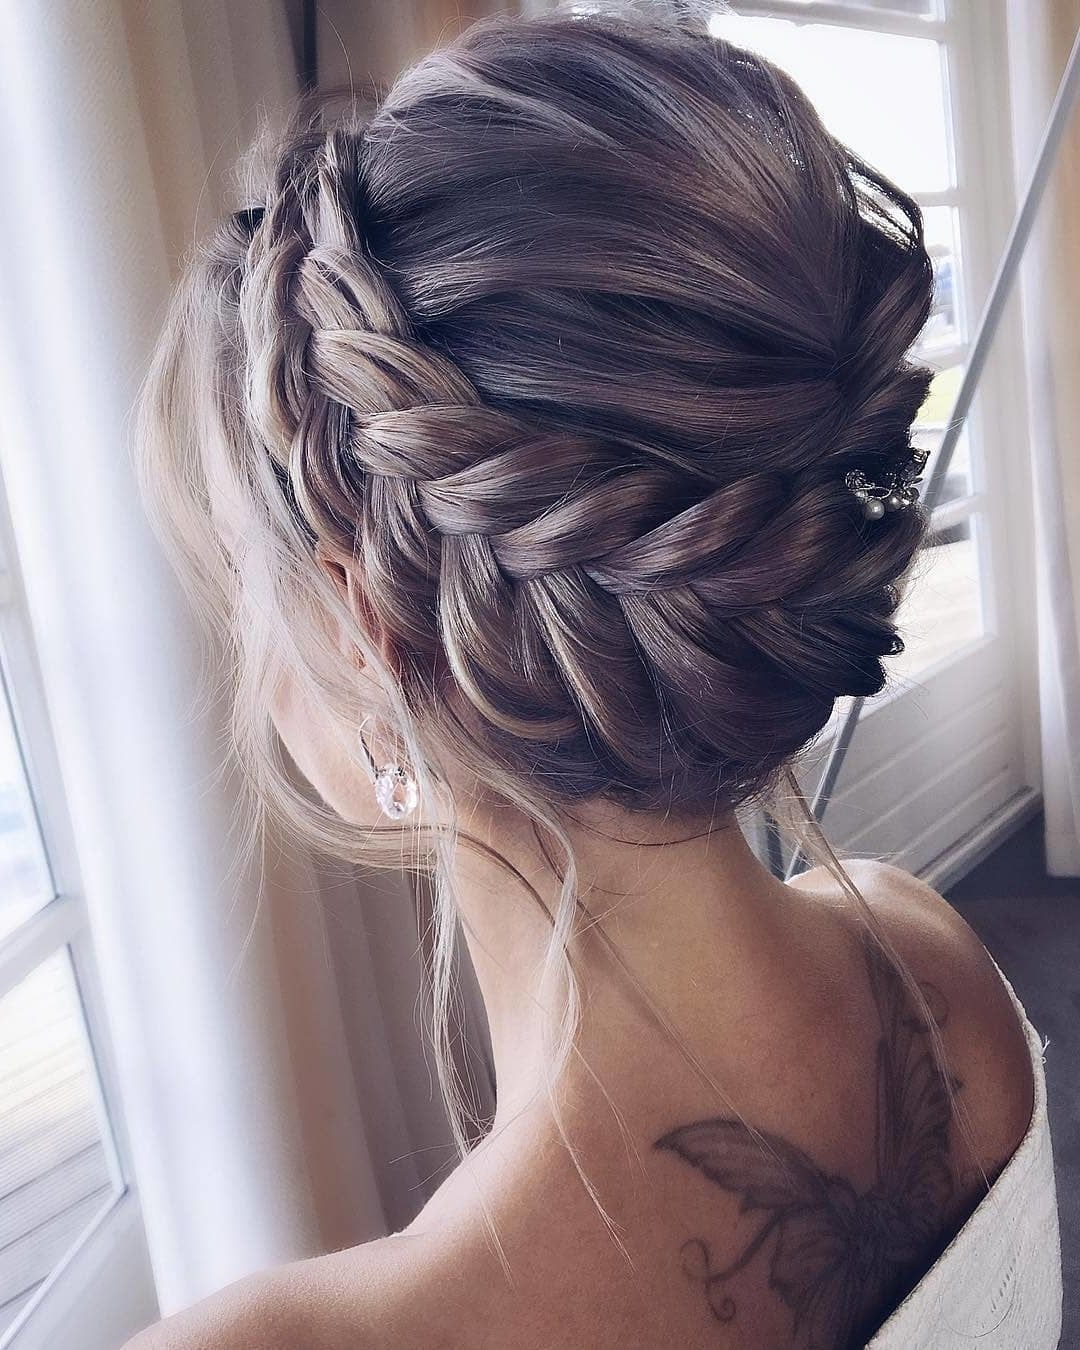 10 Wedding Hairstyles for Medium Length - With Hairstyle  Medium